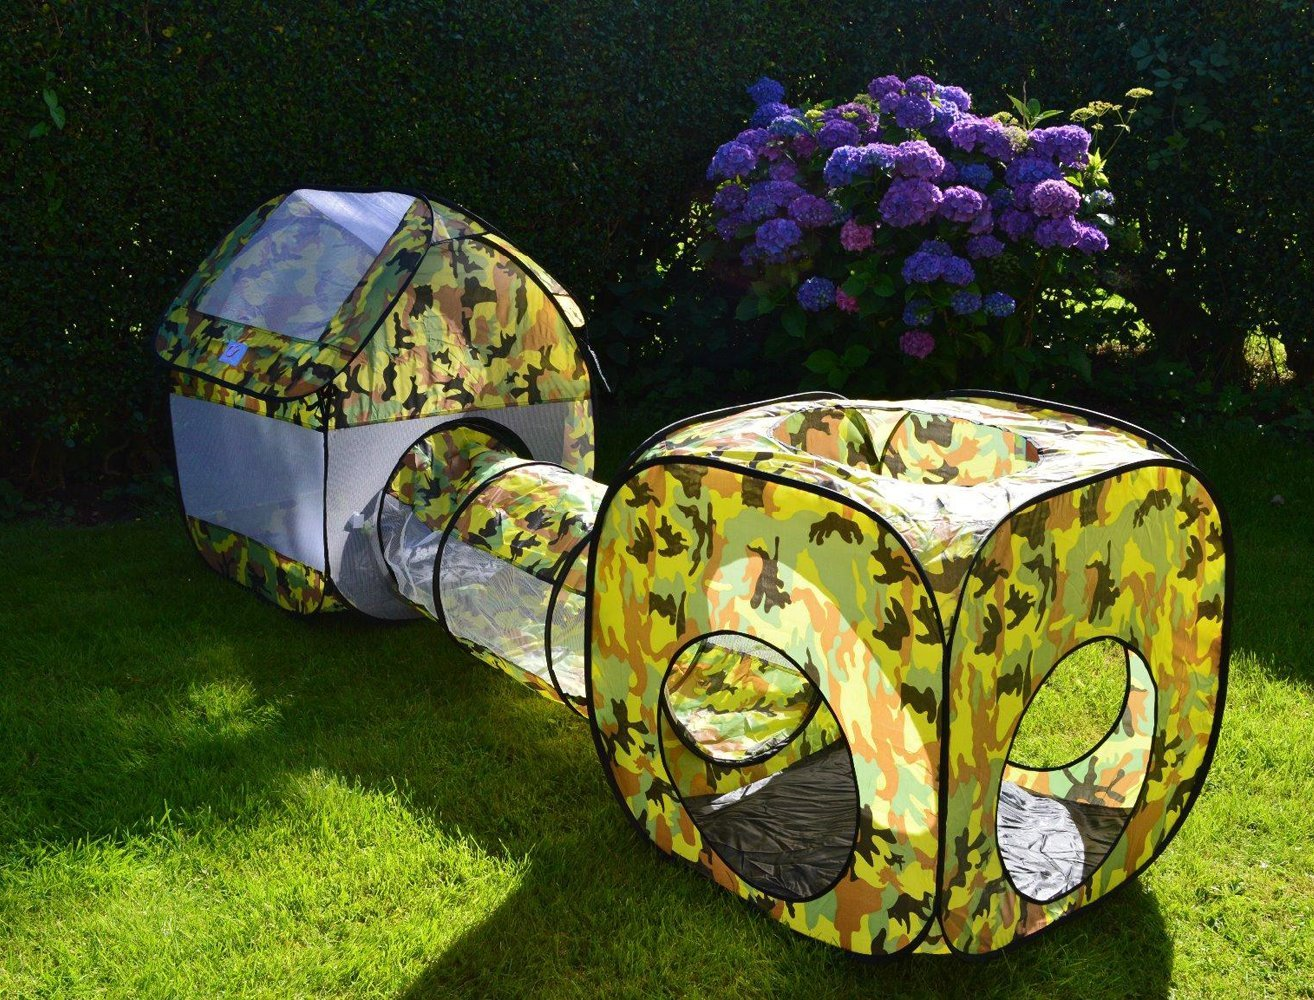 EocuSun Pop Up Kids Play Tent and Tunnel With Ball Camo - Bestter Choices Bestter Living : kids pop up tent with tunnel - memphite.com